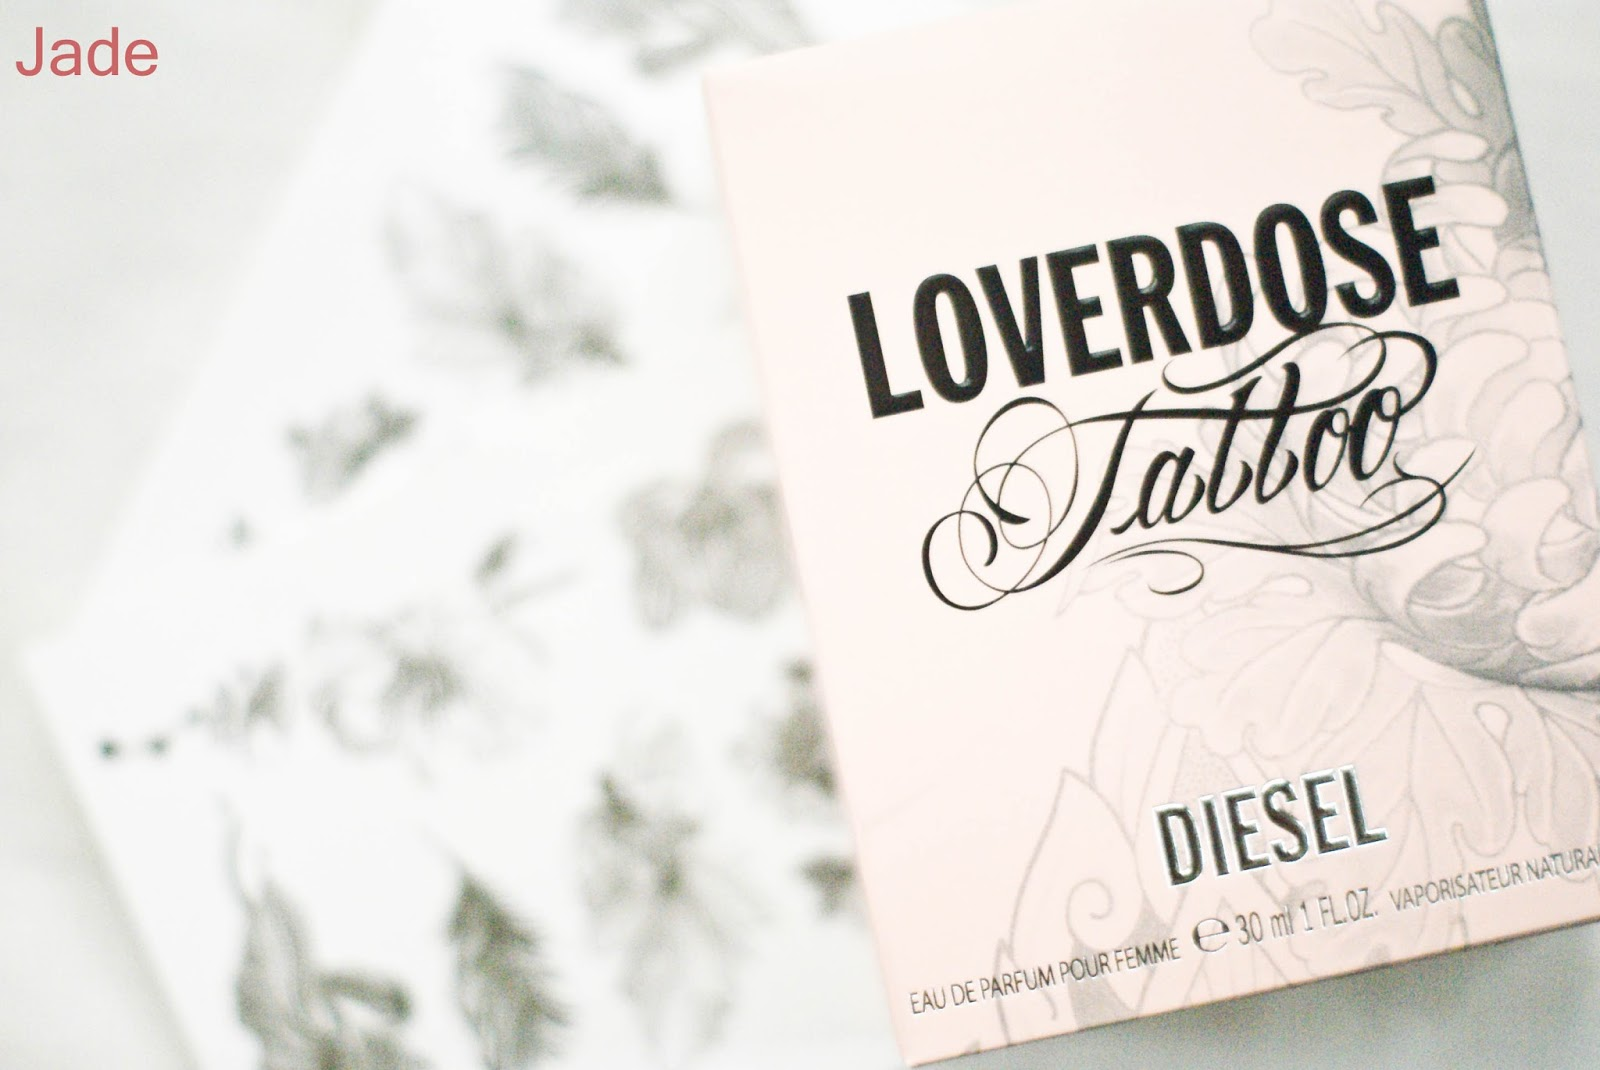 loverdose tattoo diesel